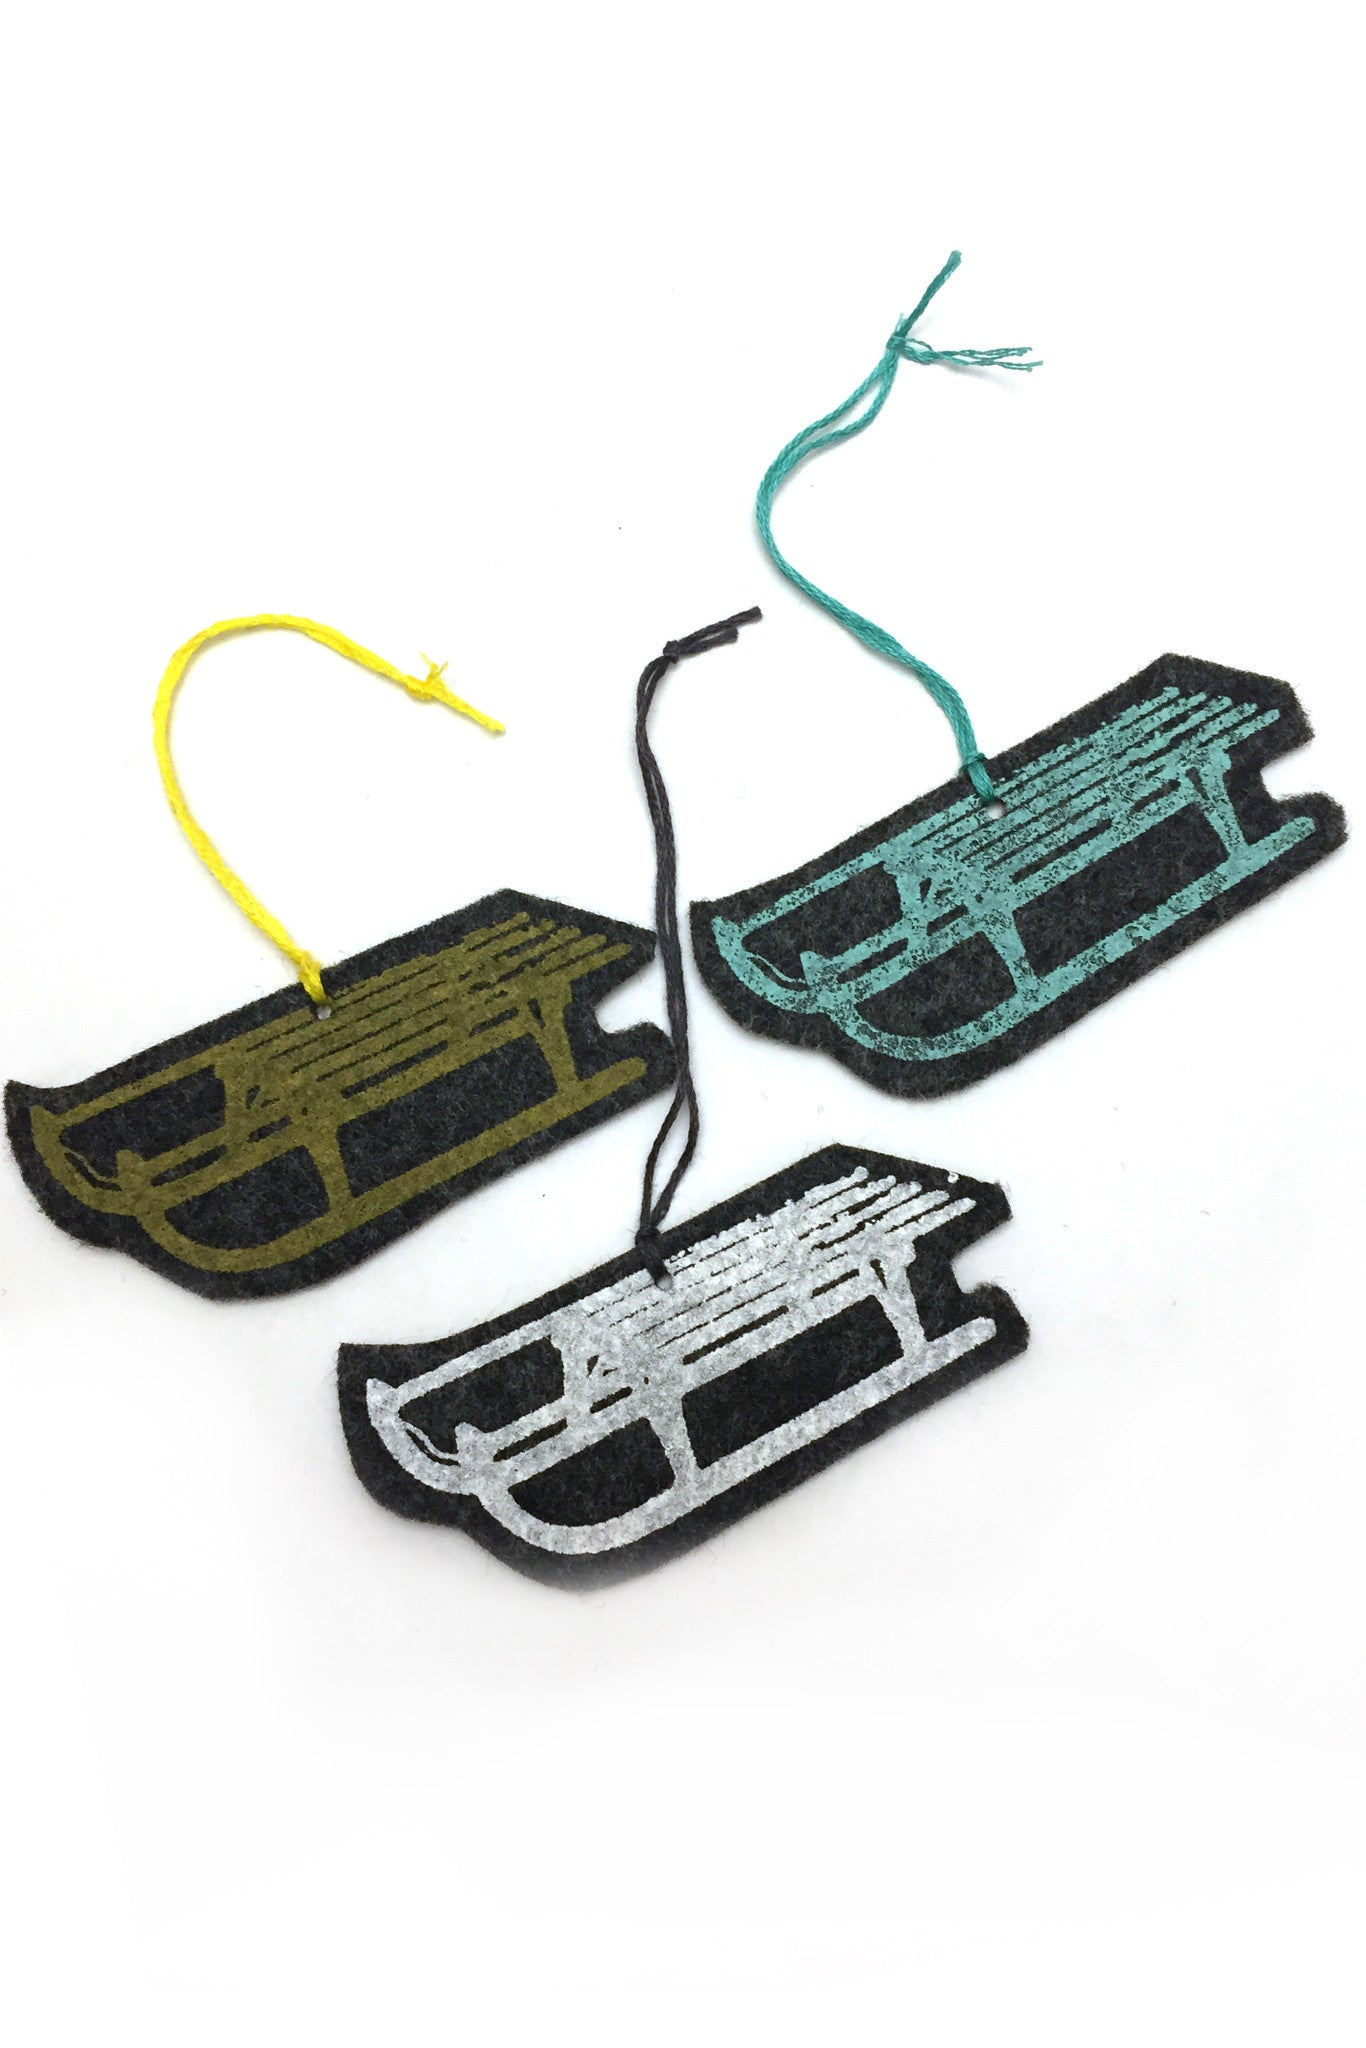 Workshop handmade silkscreen ornament sets, 3 sleds. made in Ottawa Canada